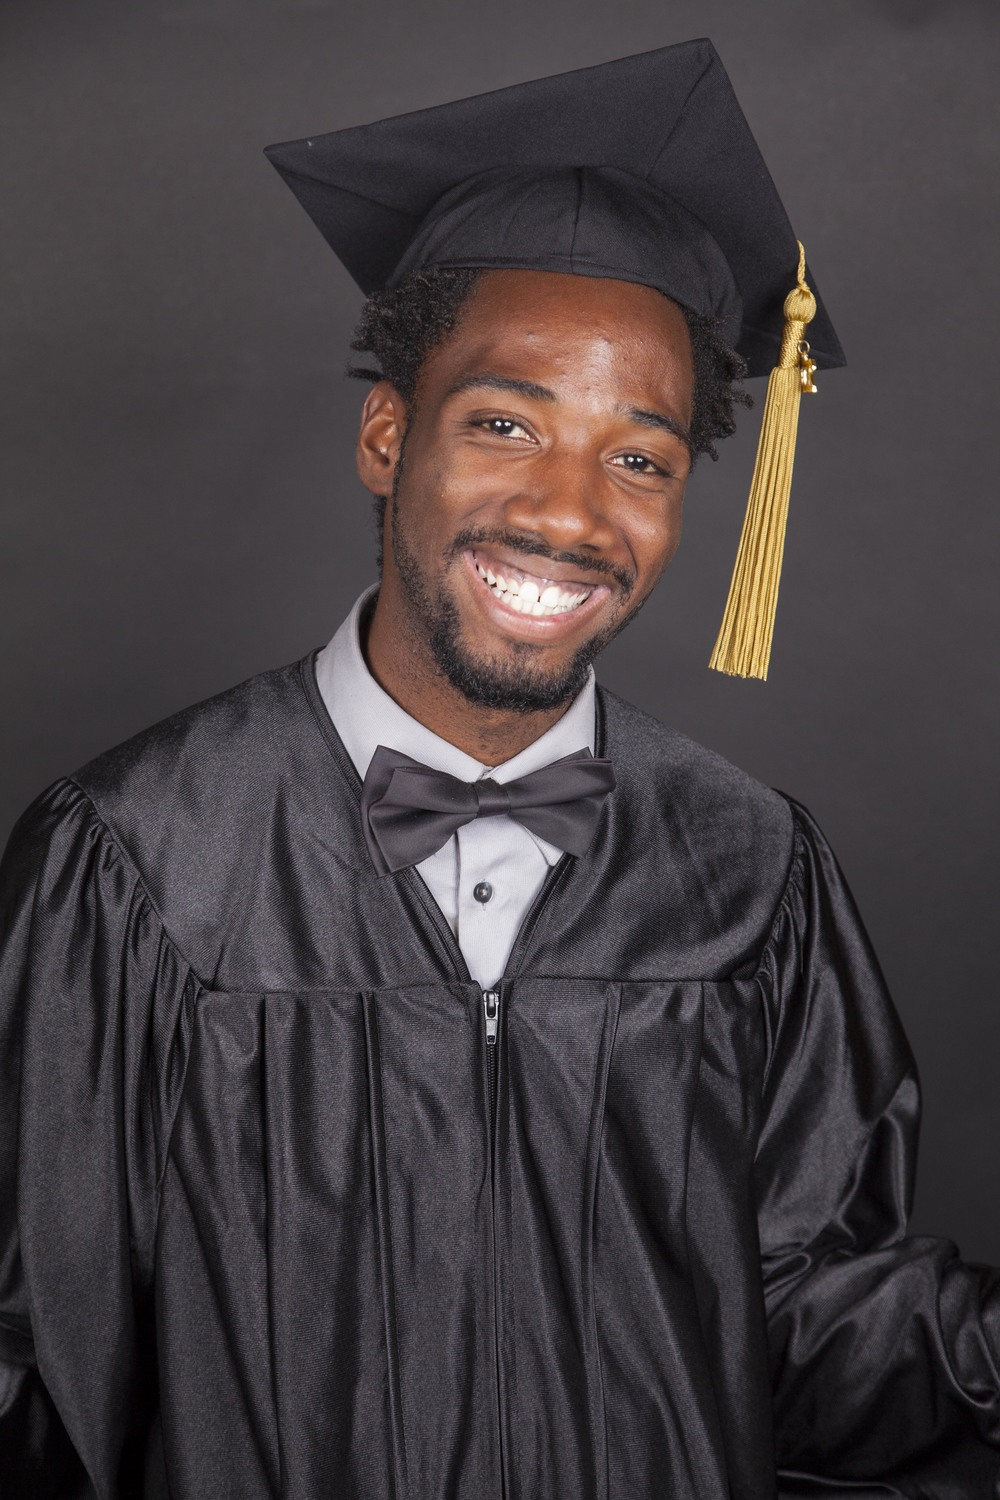 03_2016_Cap&Gown_(photo_credit_Christina_Simons).jpg